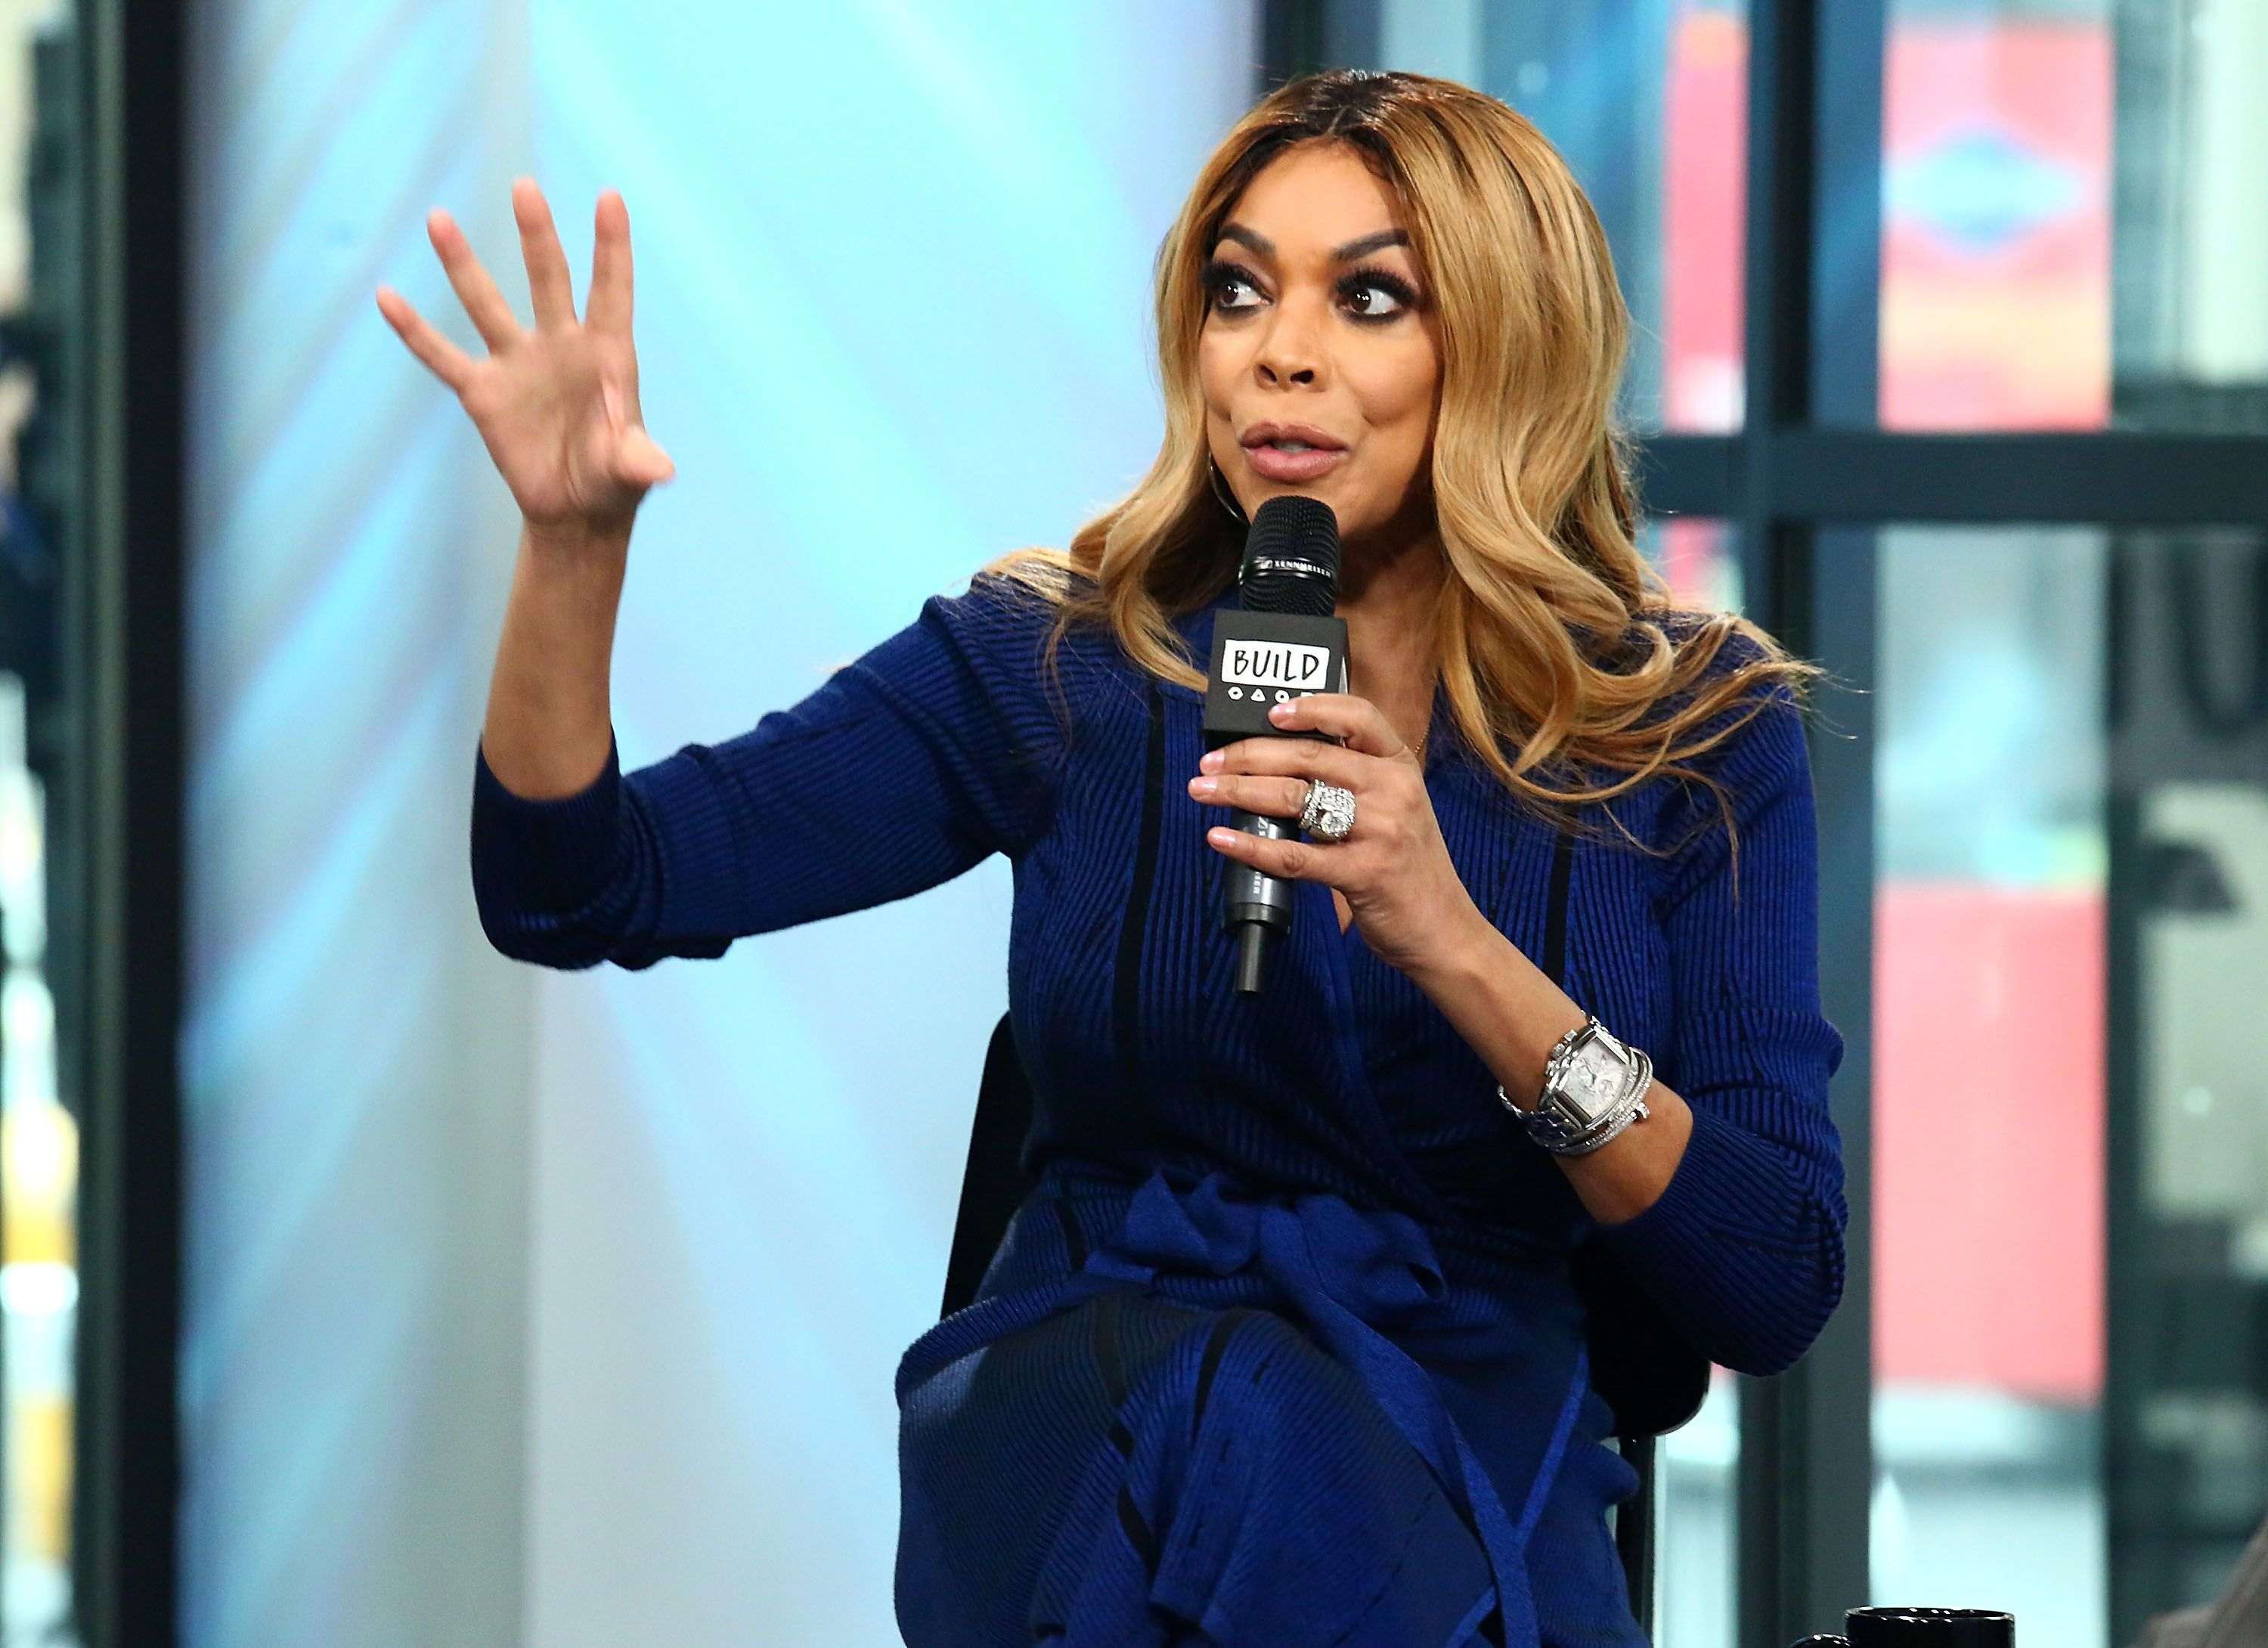 Wendy Williams discusses her daytime talk show at Build Studio on April 17, 2017 | Photo: Getty Images